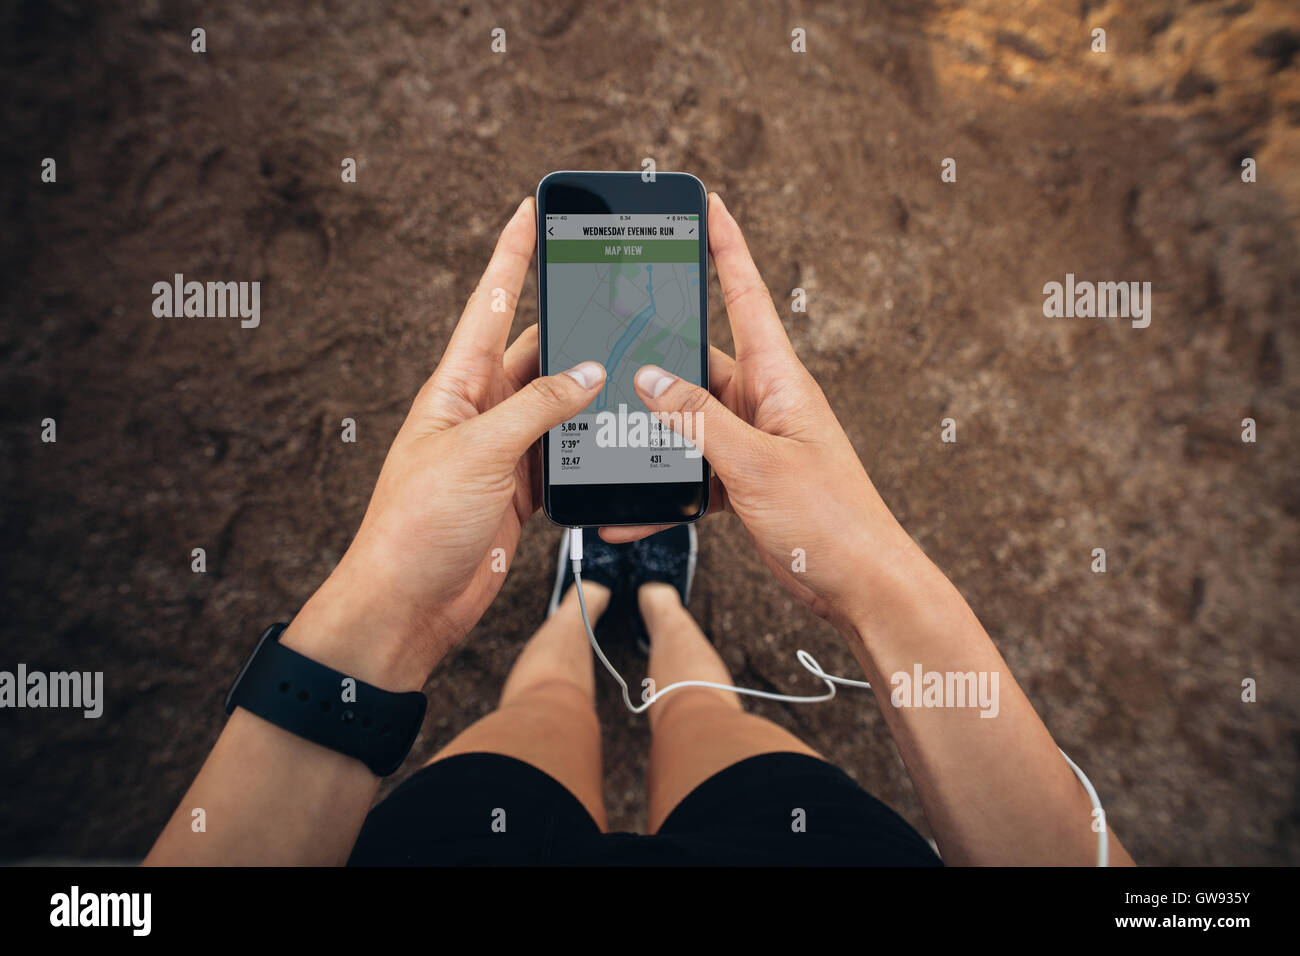 Woman checking the summary of her run on smartphone. POV shot of woman runner using a fitness app on her cellphone. - Stock Image